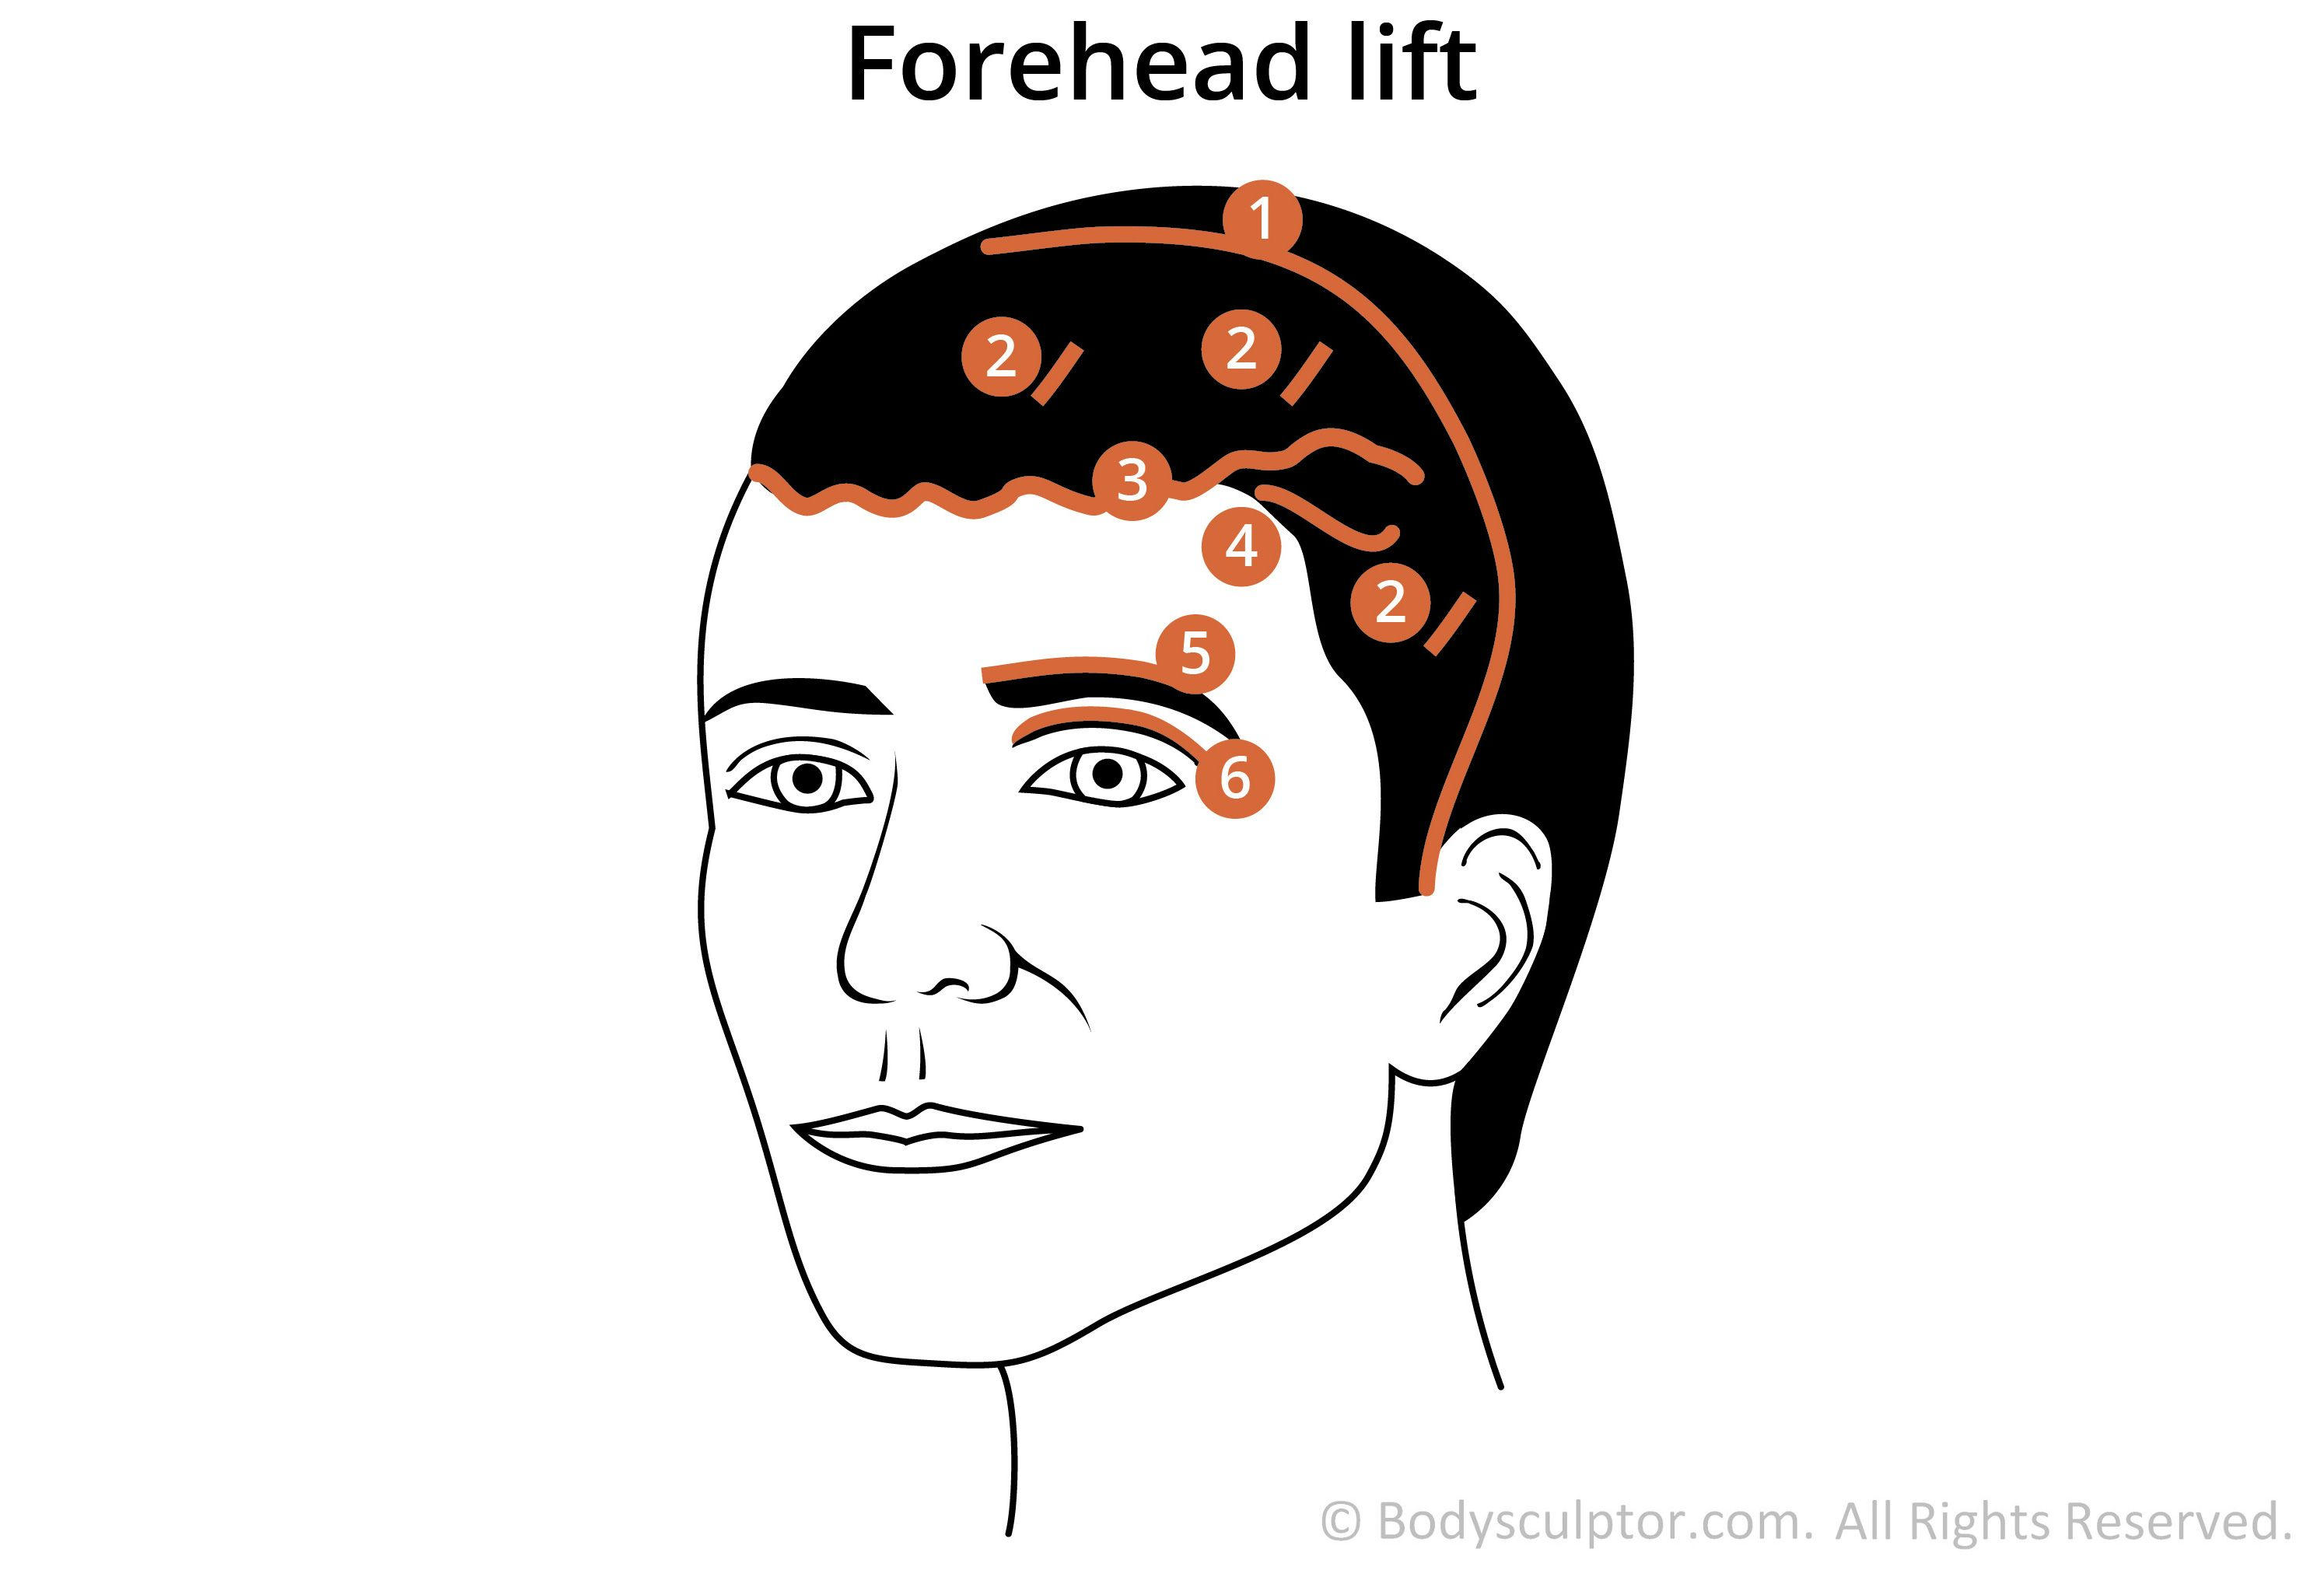 diagram of brow forehead lift incision locations [ 2988 x 2019 Pixel ]